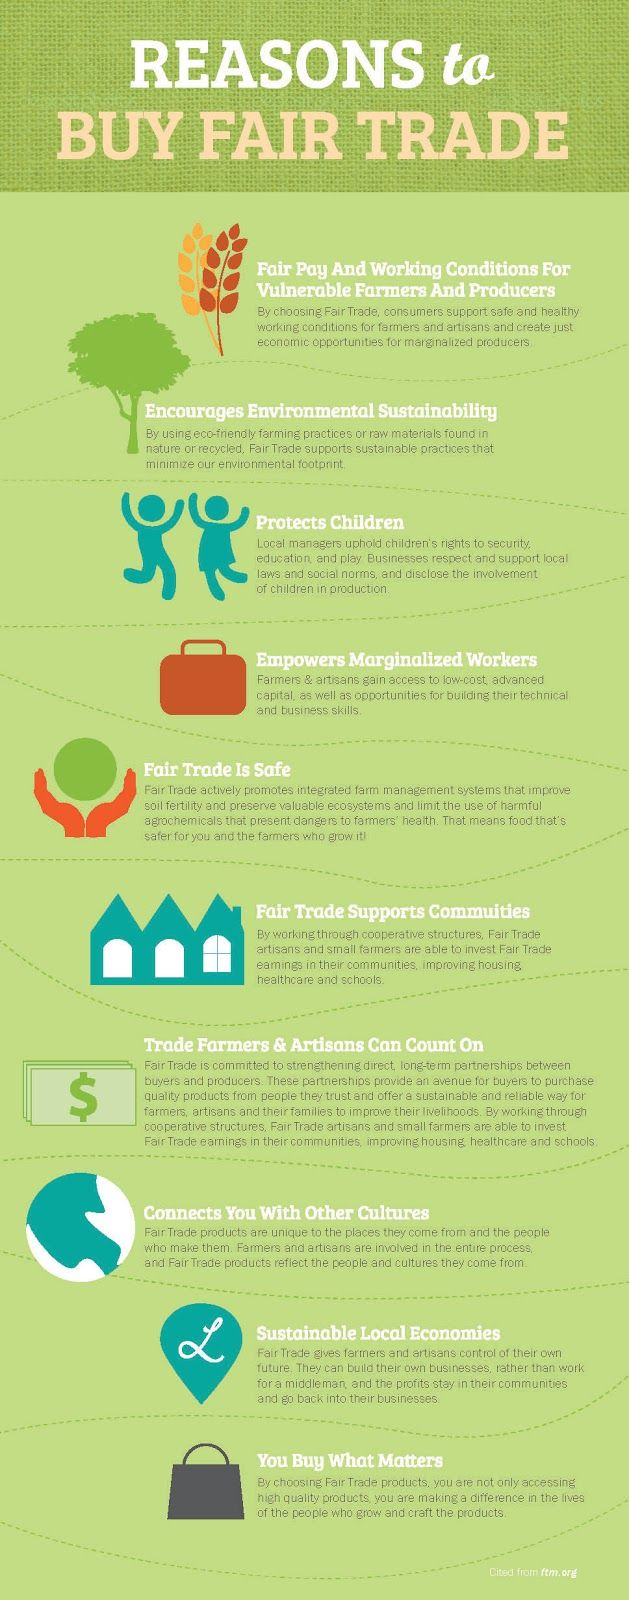 Reasons to buy fair trade via Infographic... We like this very comprehensive list!